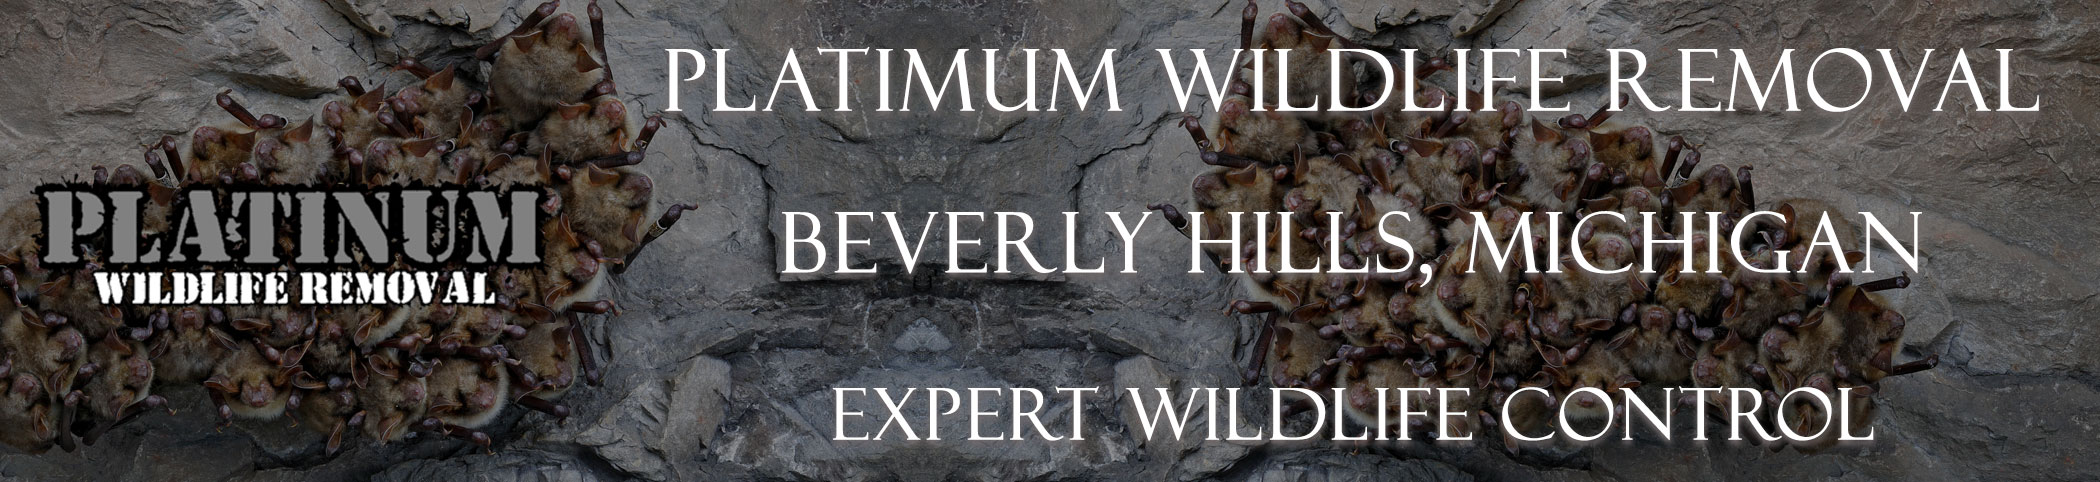 Beverly-Hills-Platinum-Wildlife-Removal-michgan